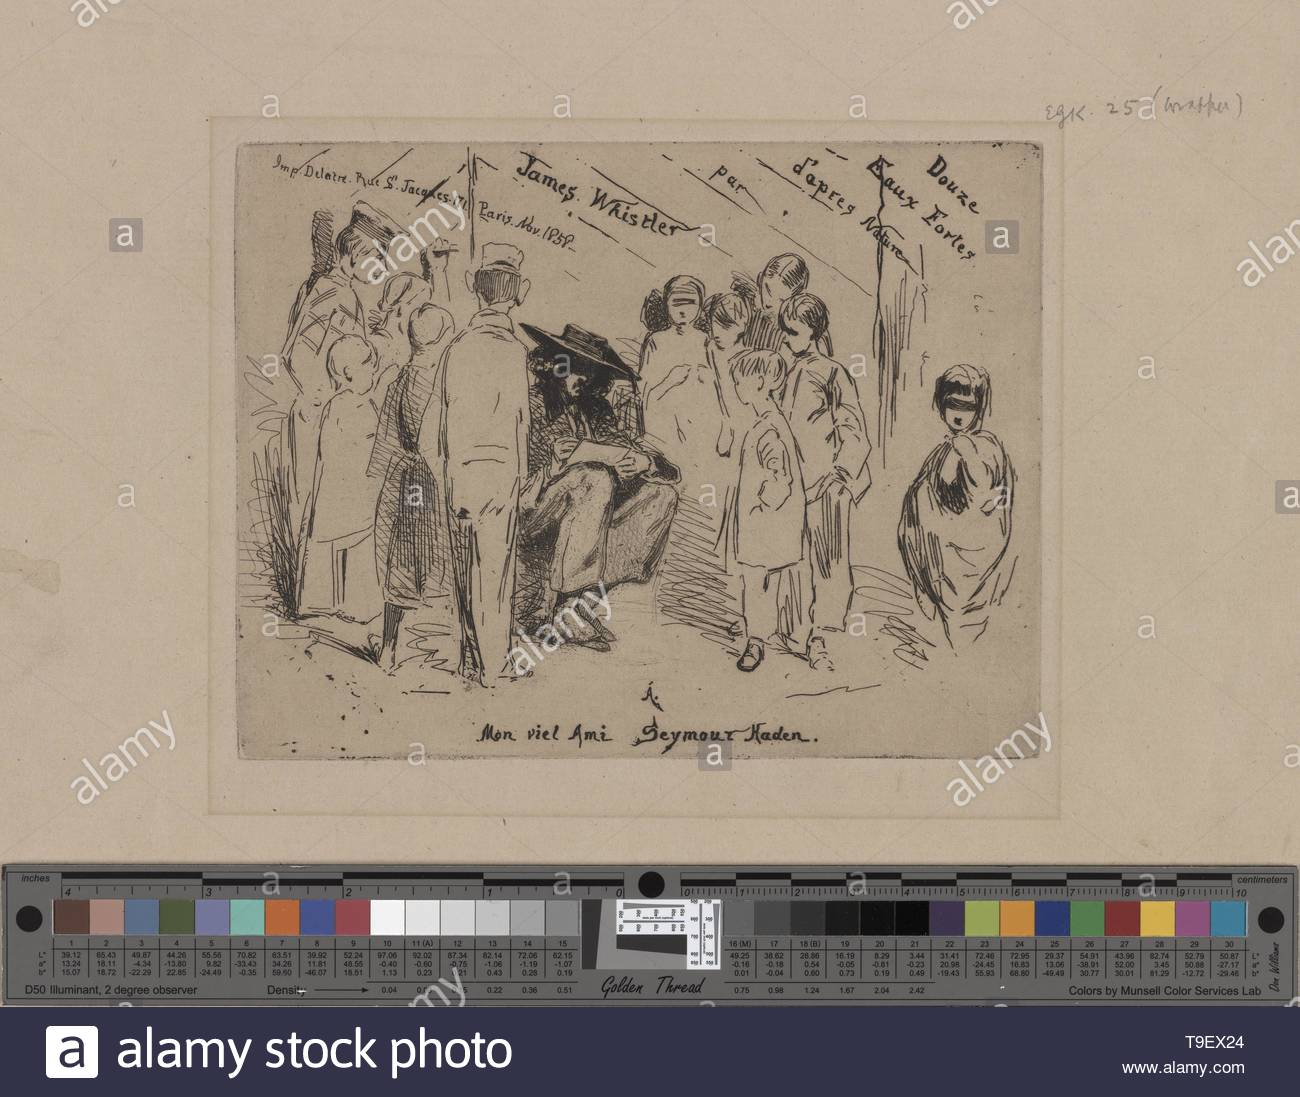 Whistler,JamesMcNeill(1834-1903)-Title to the French set (2) - Stock Image